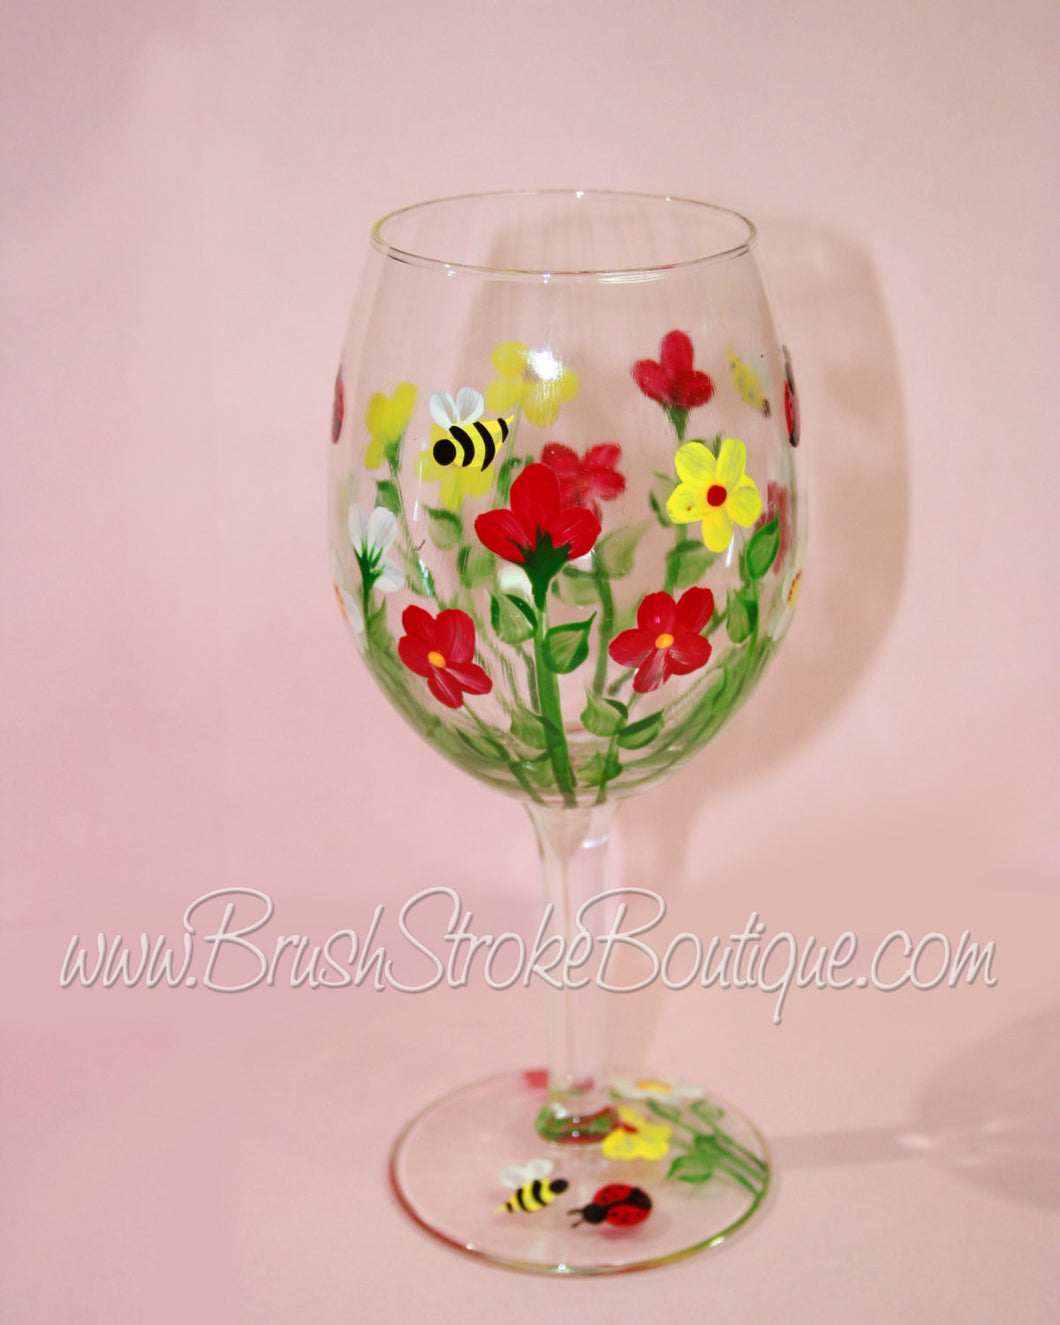 Hand Painted Wine Glass - Summer Bug Garden - Original Designs by Cathy Kraemer